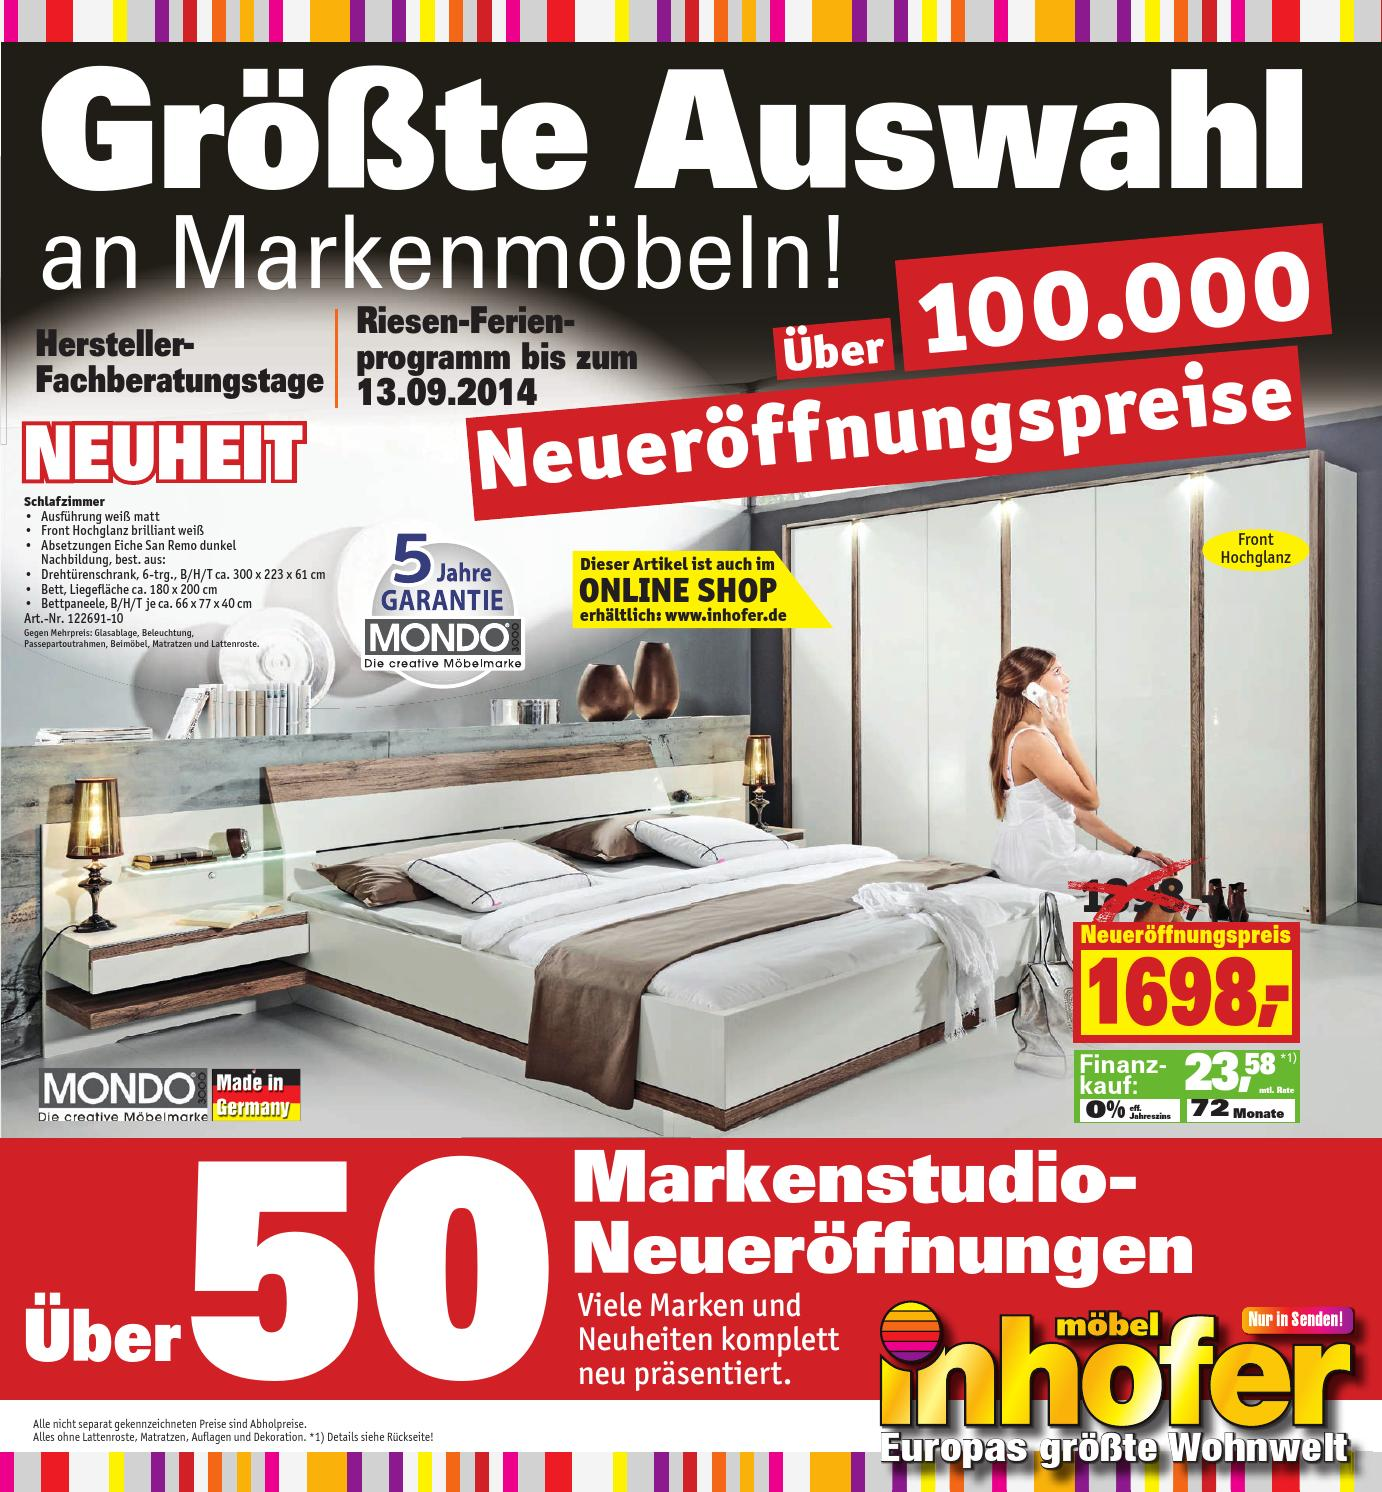 inhofer gr te auswahl an markenm beln by media service ostalb gmbh issuu. Black Bedroom Furniture Sets. Home Design Ideas